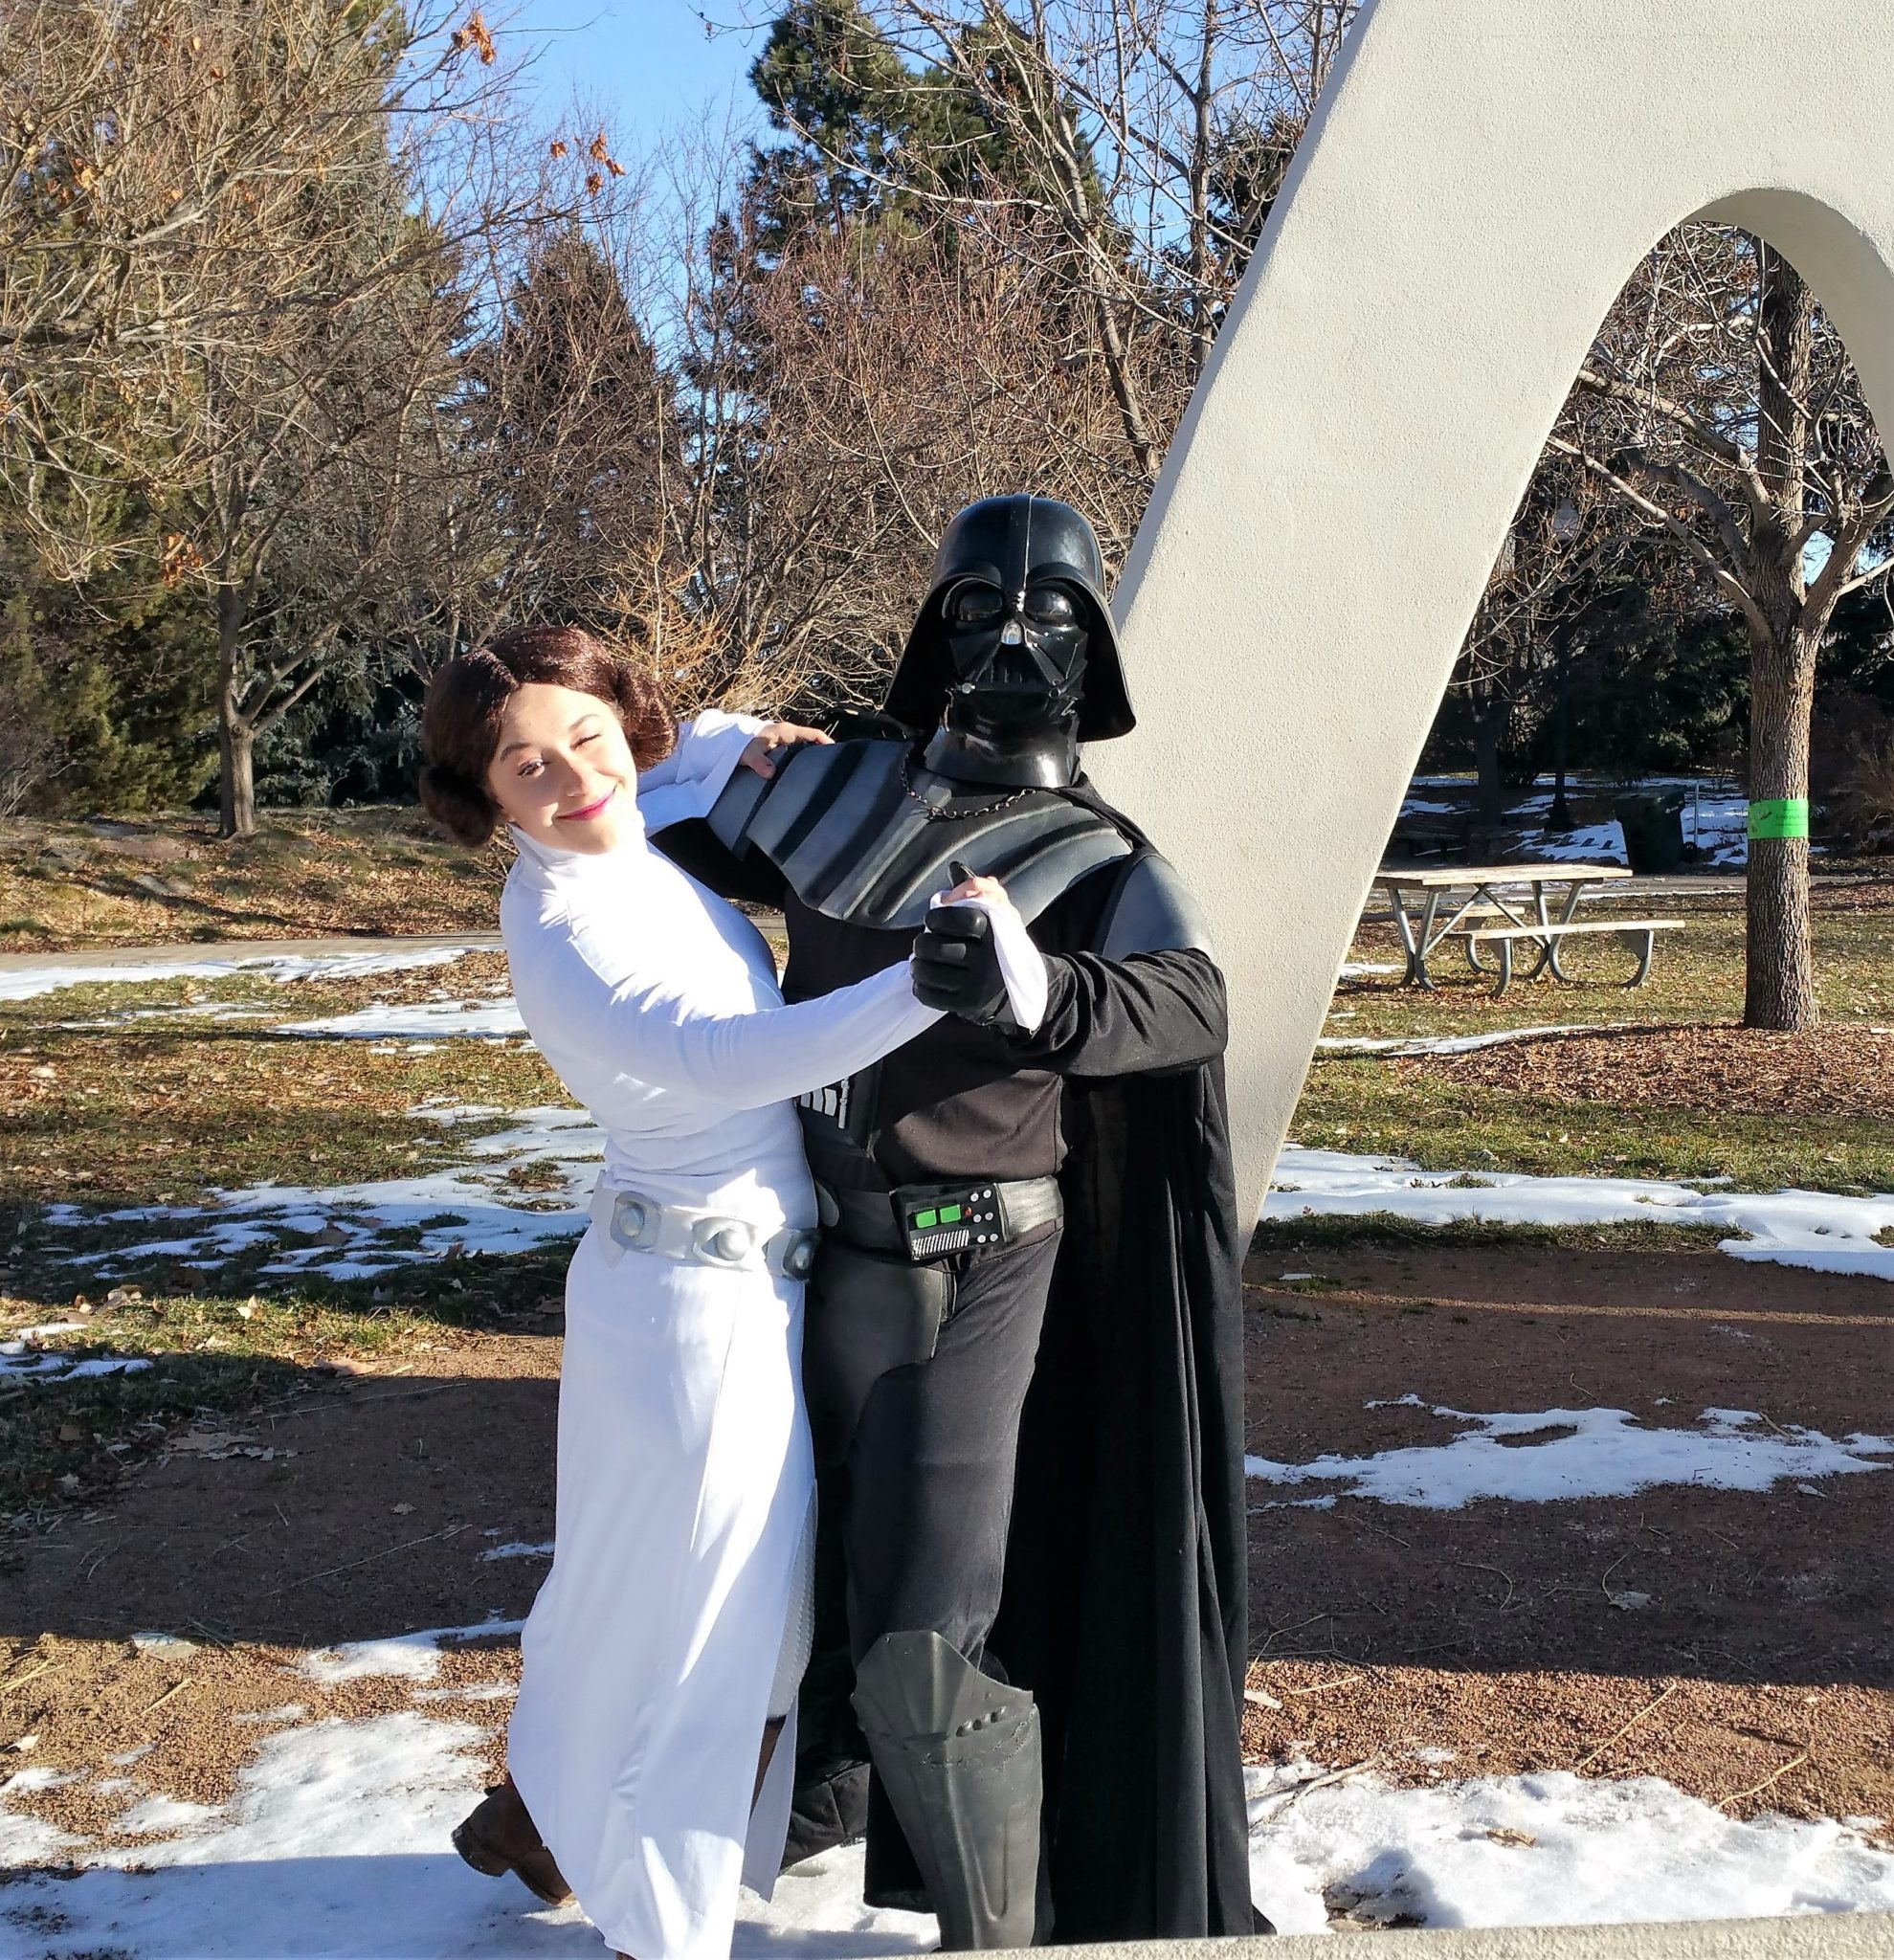 Darth Vader dancing with daughter Leia